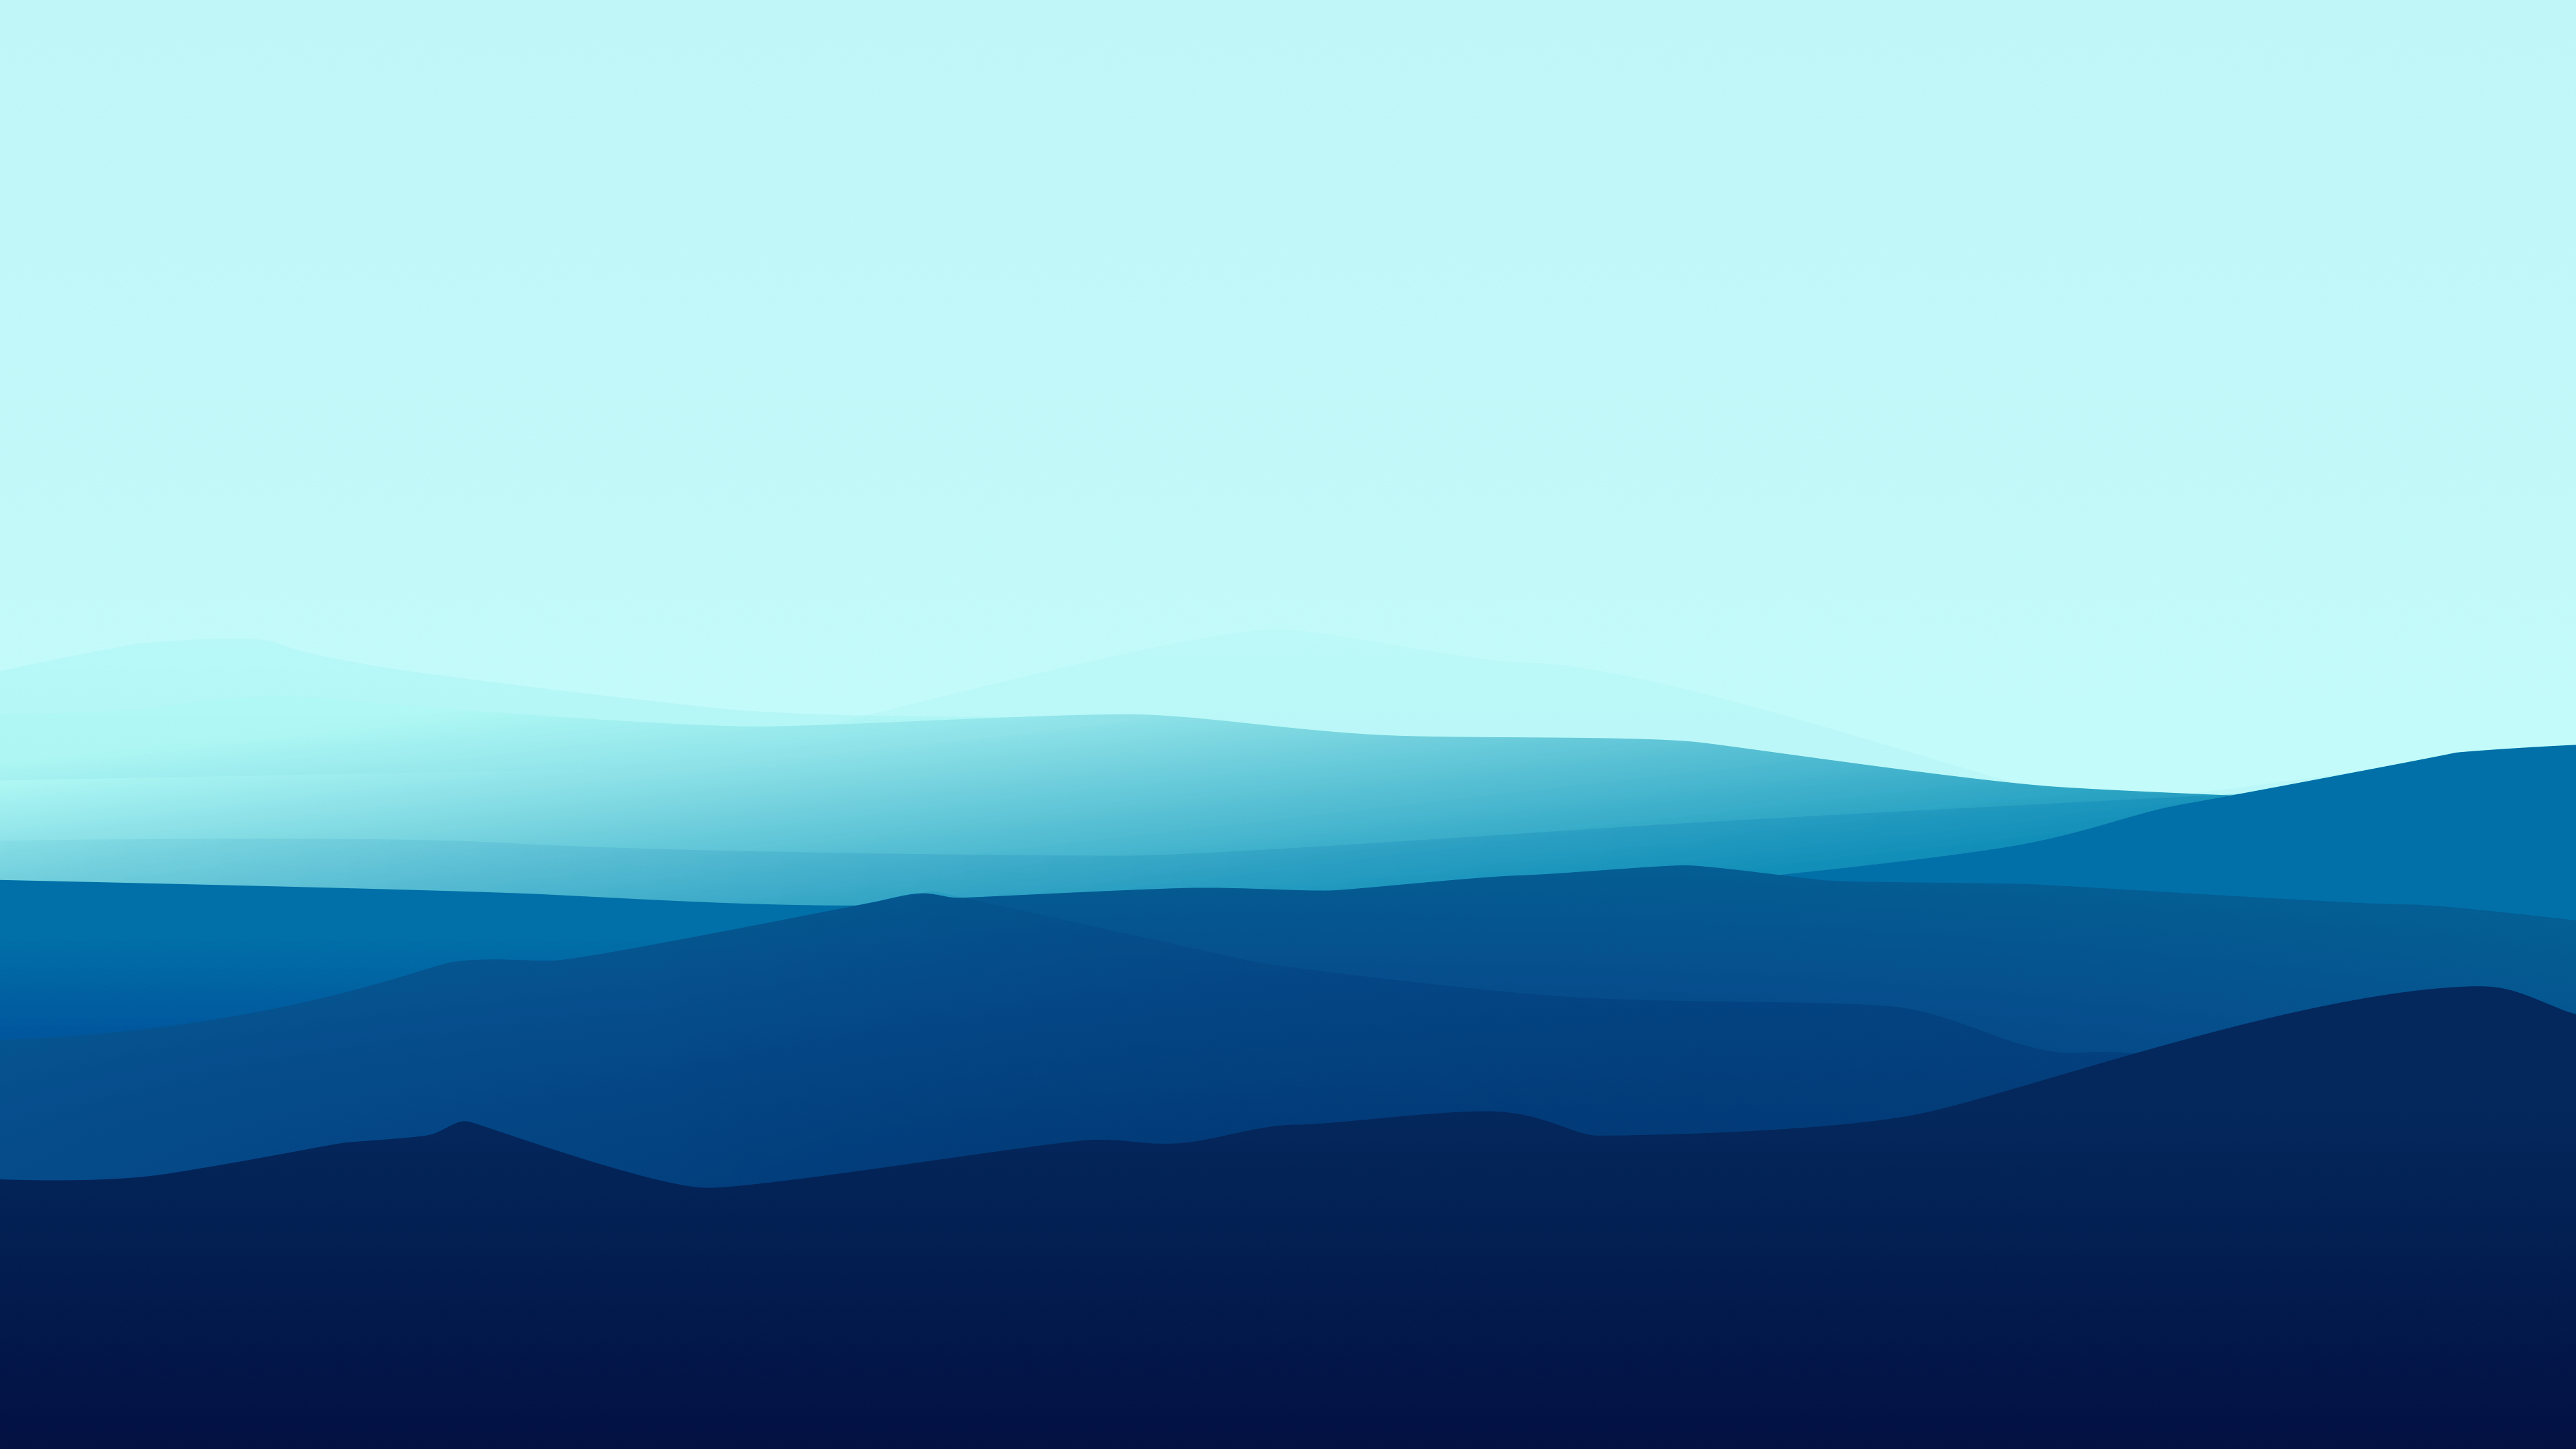 25 Minimalist Qhd Wallpapers For Your Pc Or Macbook - Minimalist Wallpaper Macbook , HD Wallpaper & Backgrounds